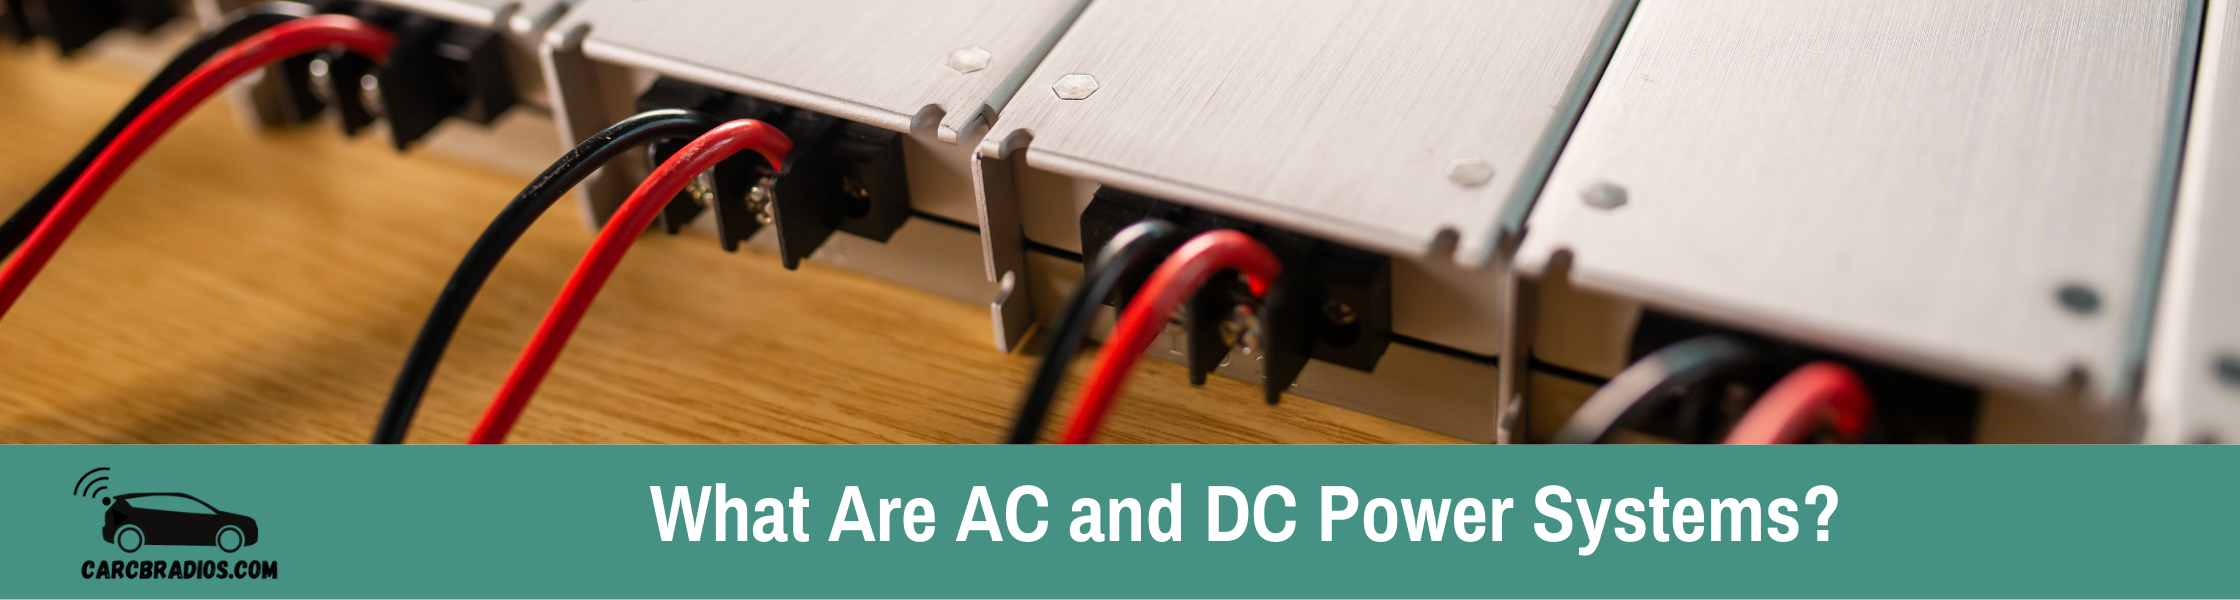 What Are AC and DC Power Systems?: The term AC power system is due to the fact that it uses alternating current. The term DC power system is because direct current flows in a single direction only and there is no alternation of polarity.